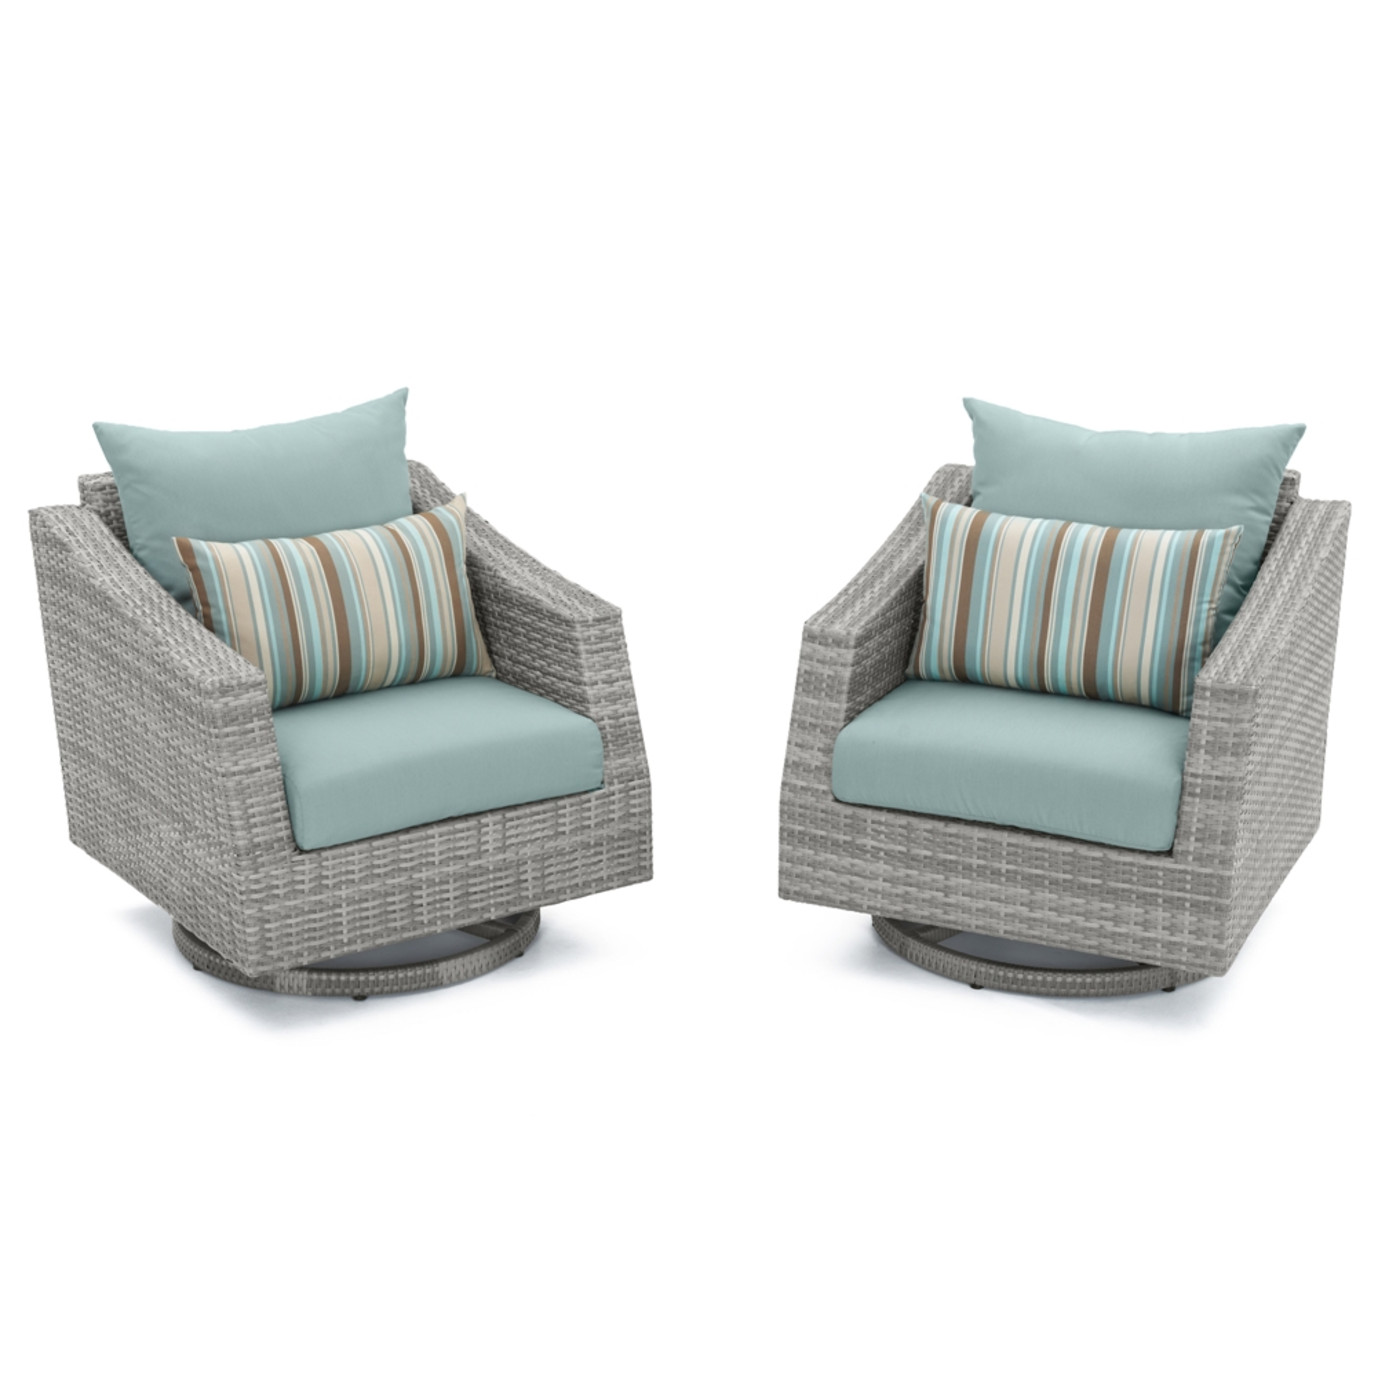 Cannes™ Motion Club Chairs in Bliss Blue